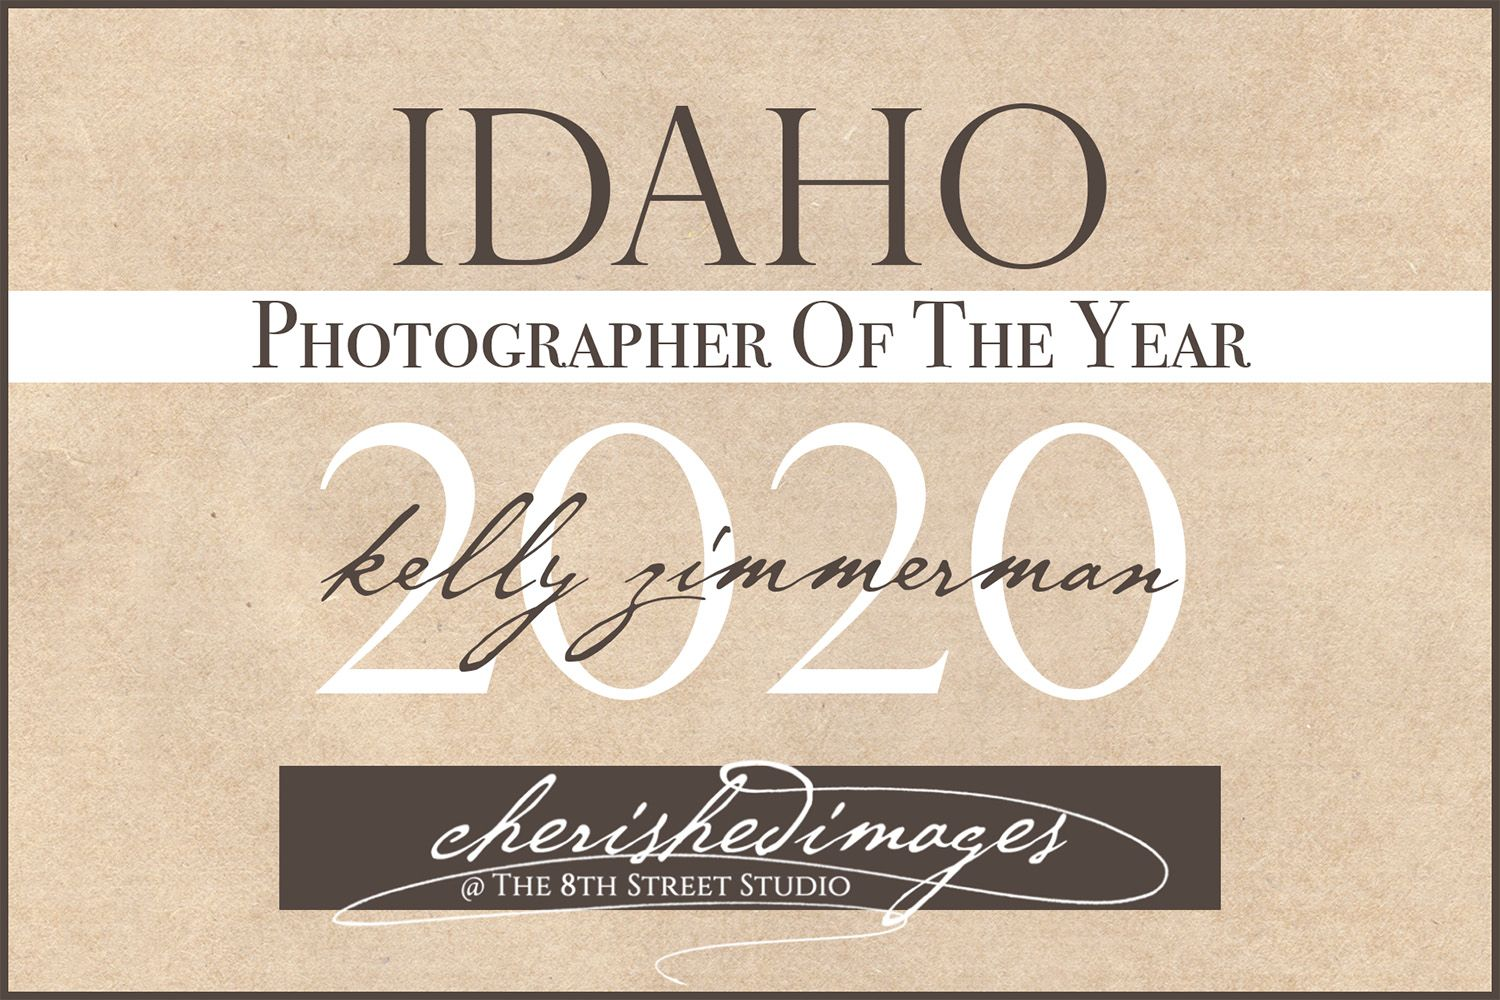 2020 Idaho Photographer Of The Year Kelly Zimmerman